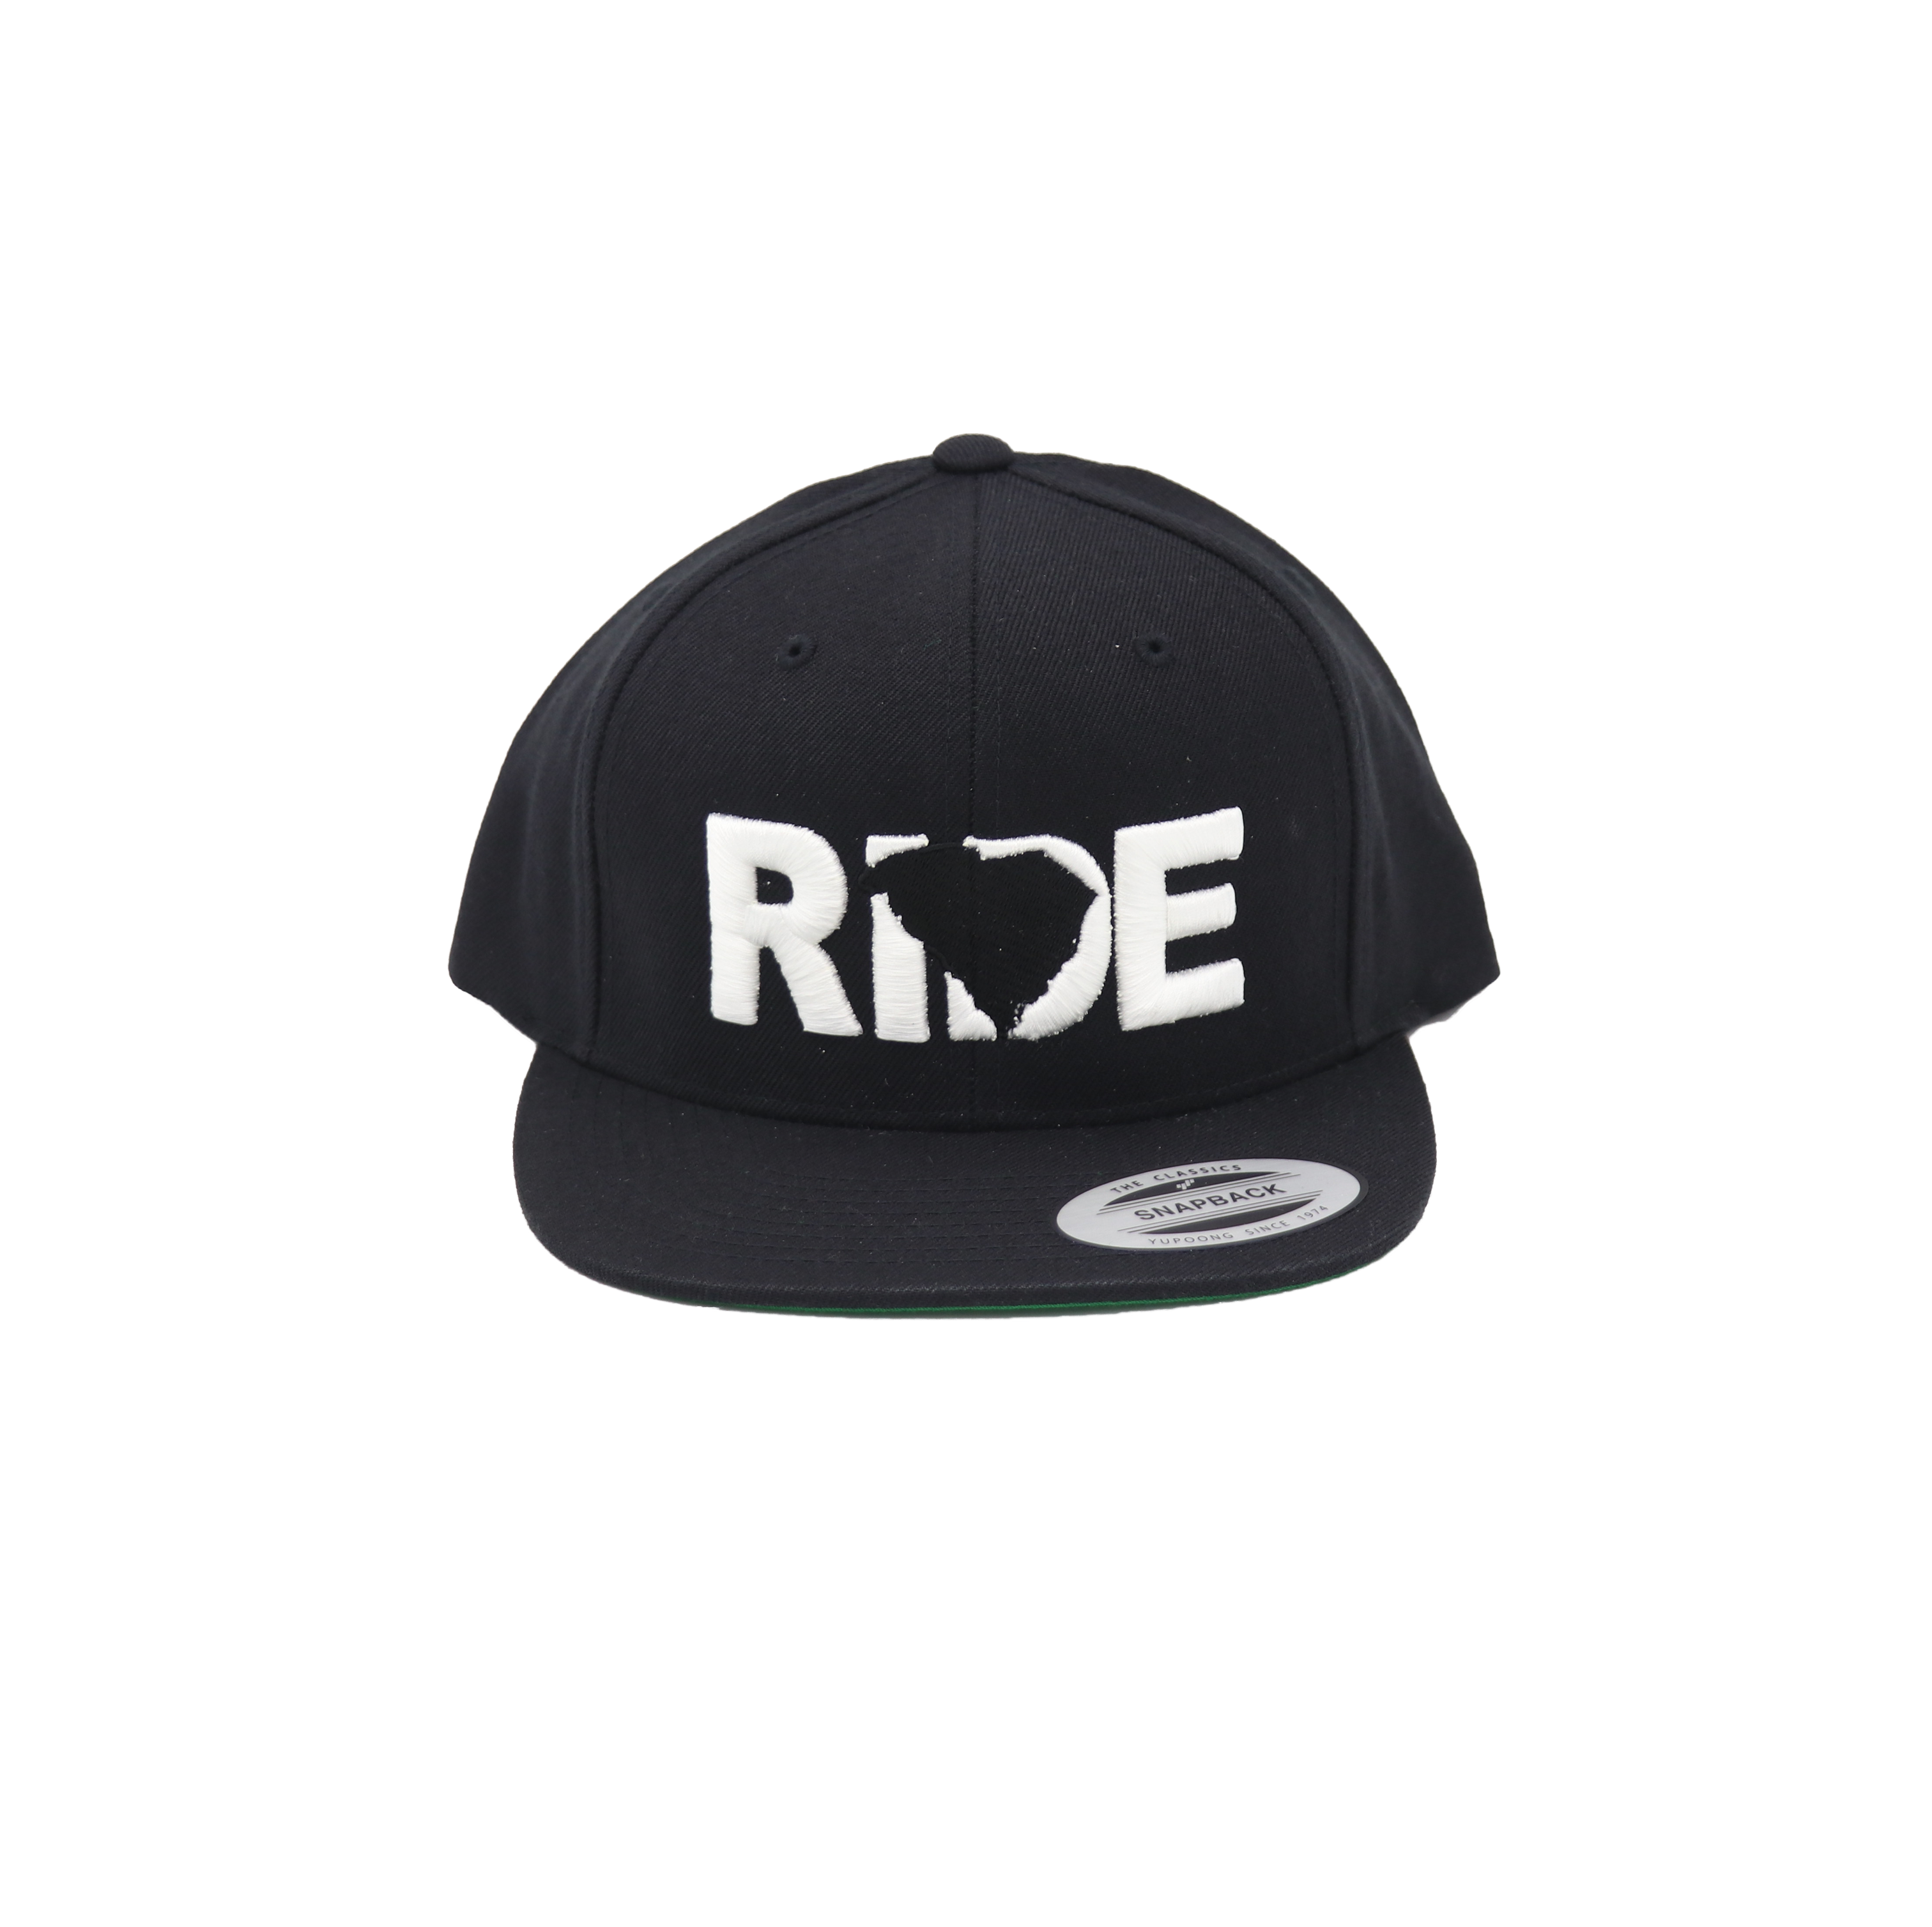 Ride South Carolina Classic Embroidered  Snapback Flat Brim Hat Black/White